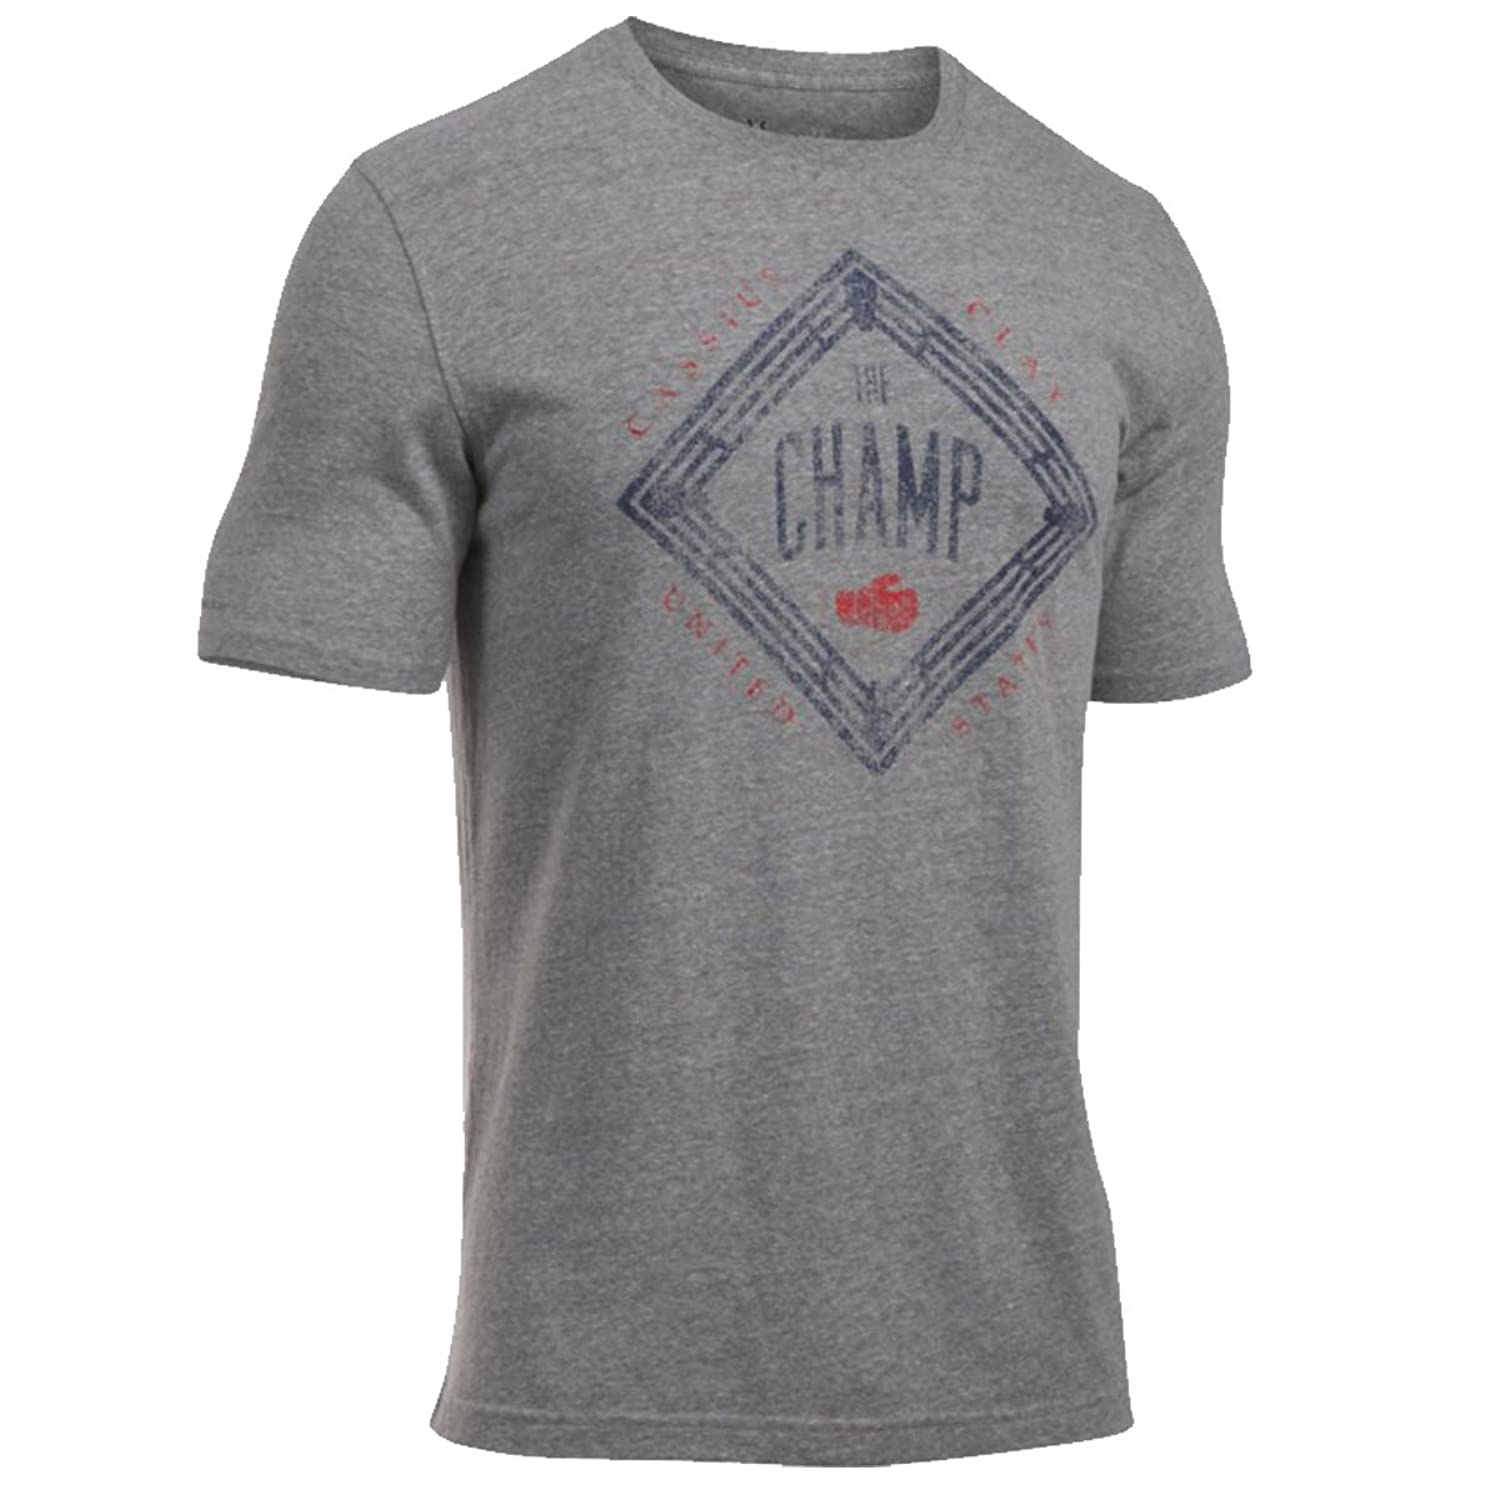 Under Armour 2016 Mens Clay The Champ Muhammed Ali Triblend Tee T Shirt